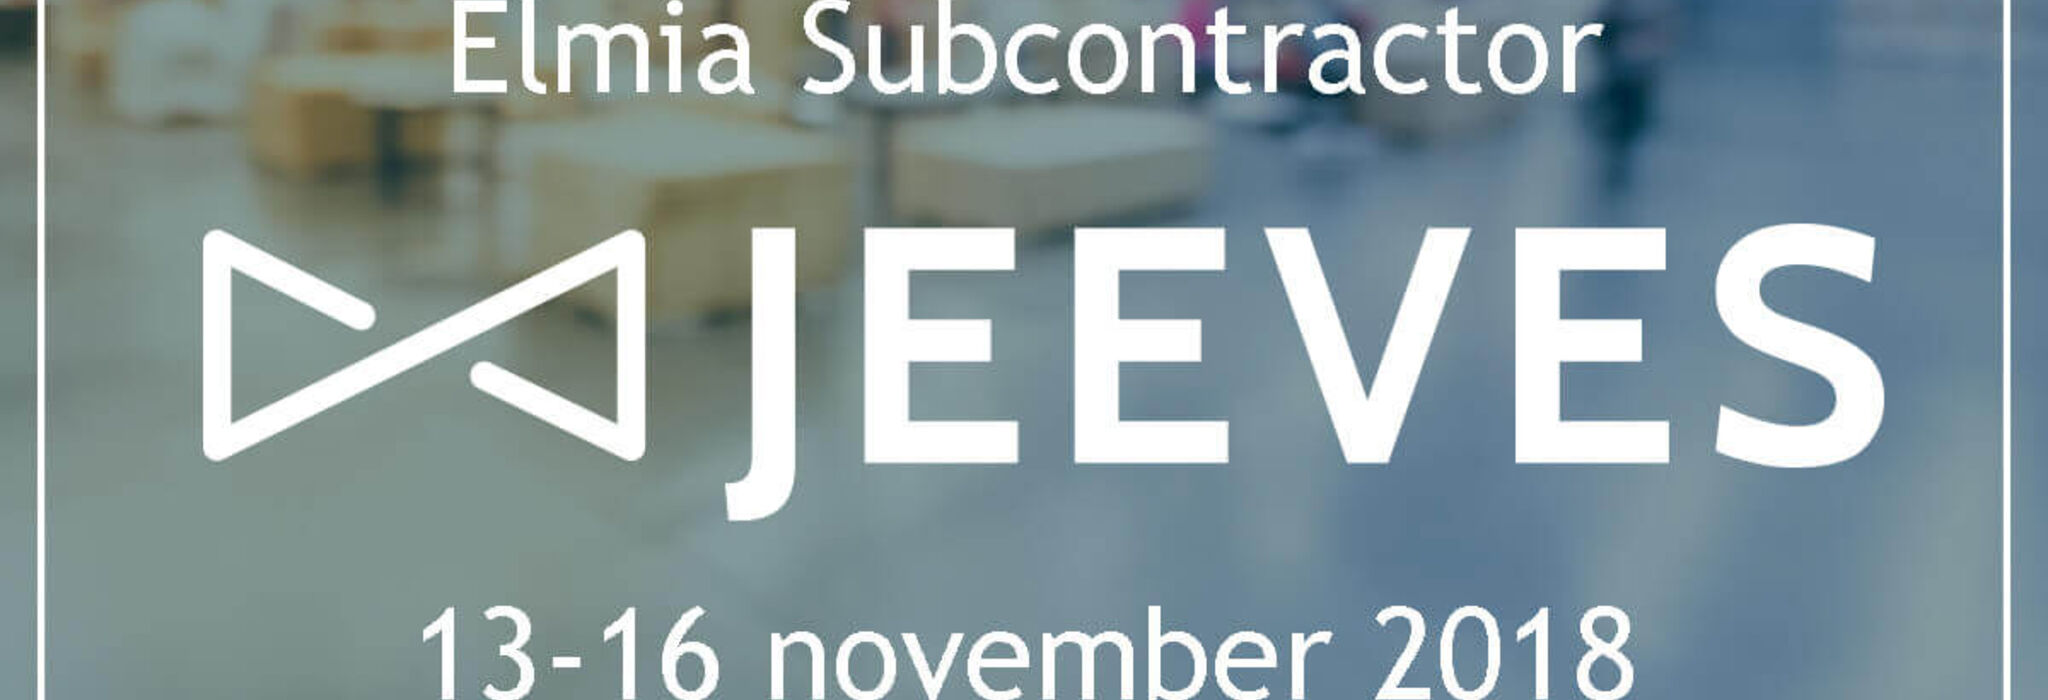 Jeeves ERP på Elmia Subcontractor